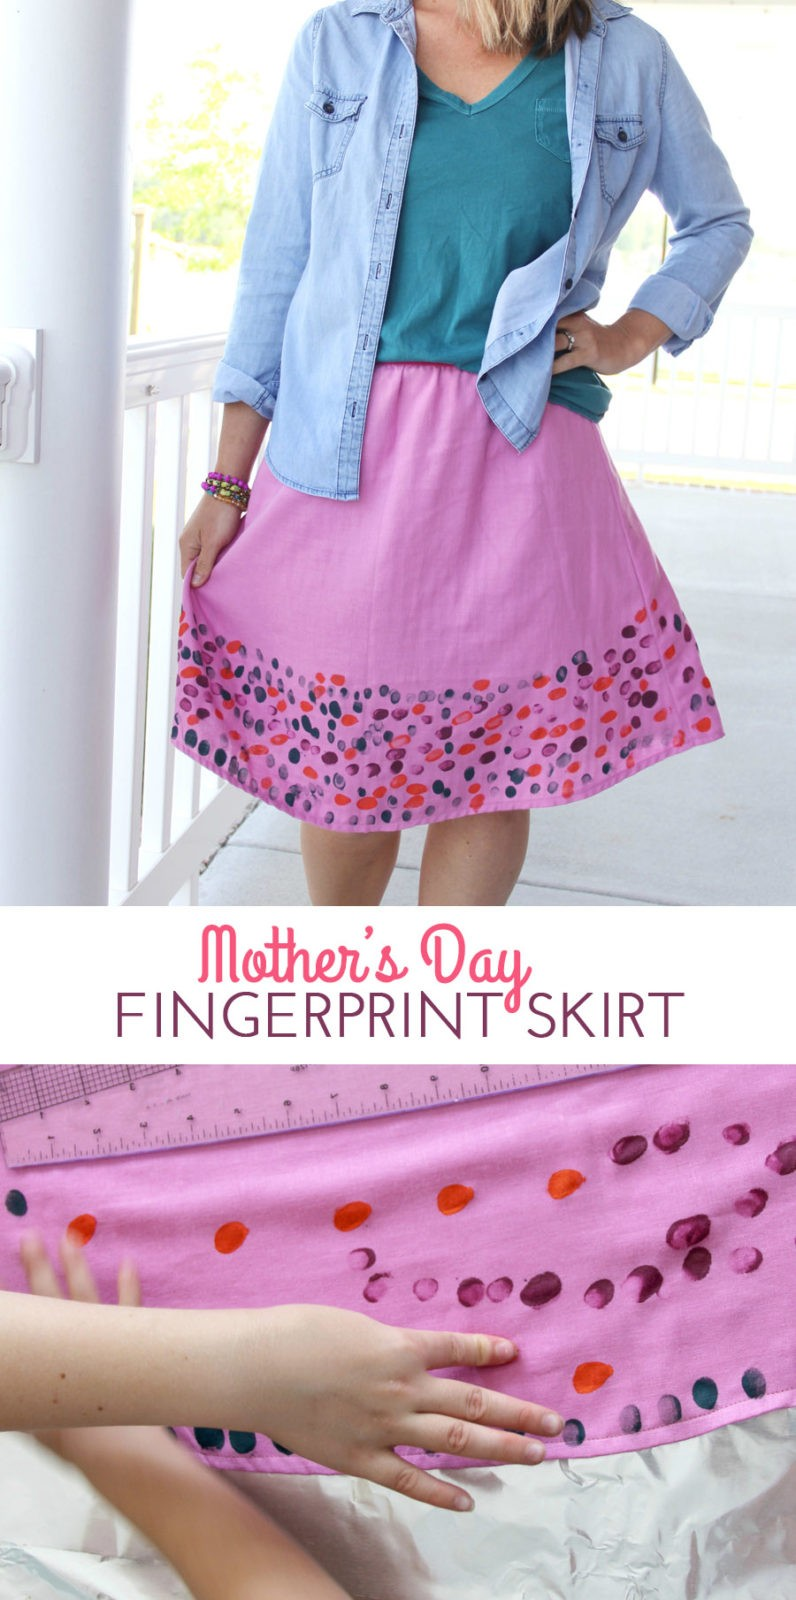 Make Mom a fingerprint skirt this Mother's Day!